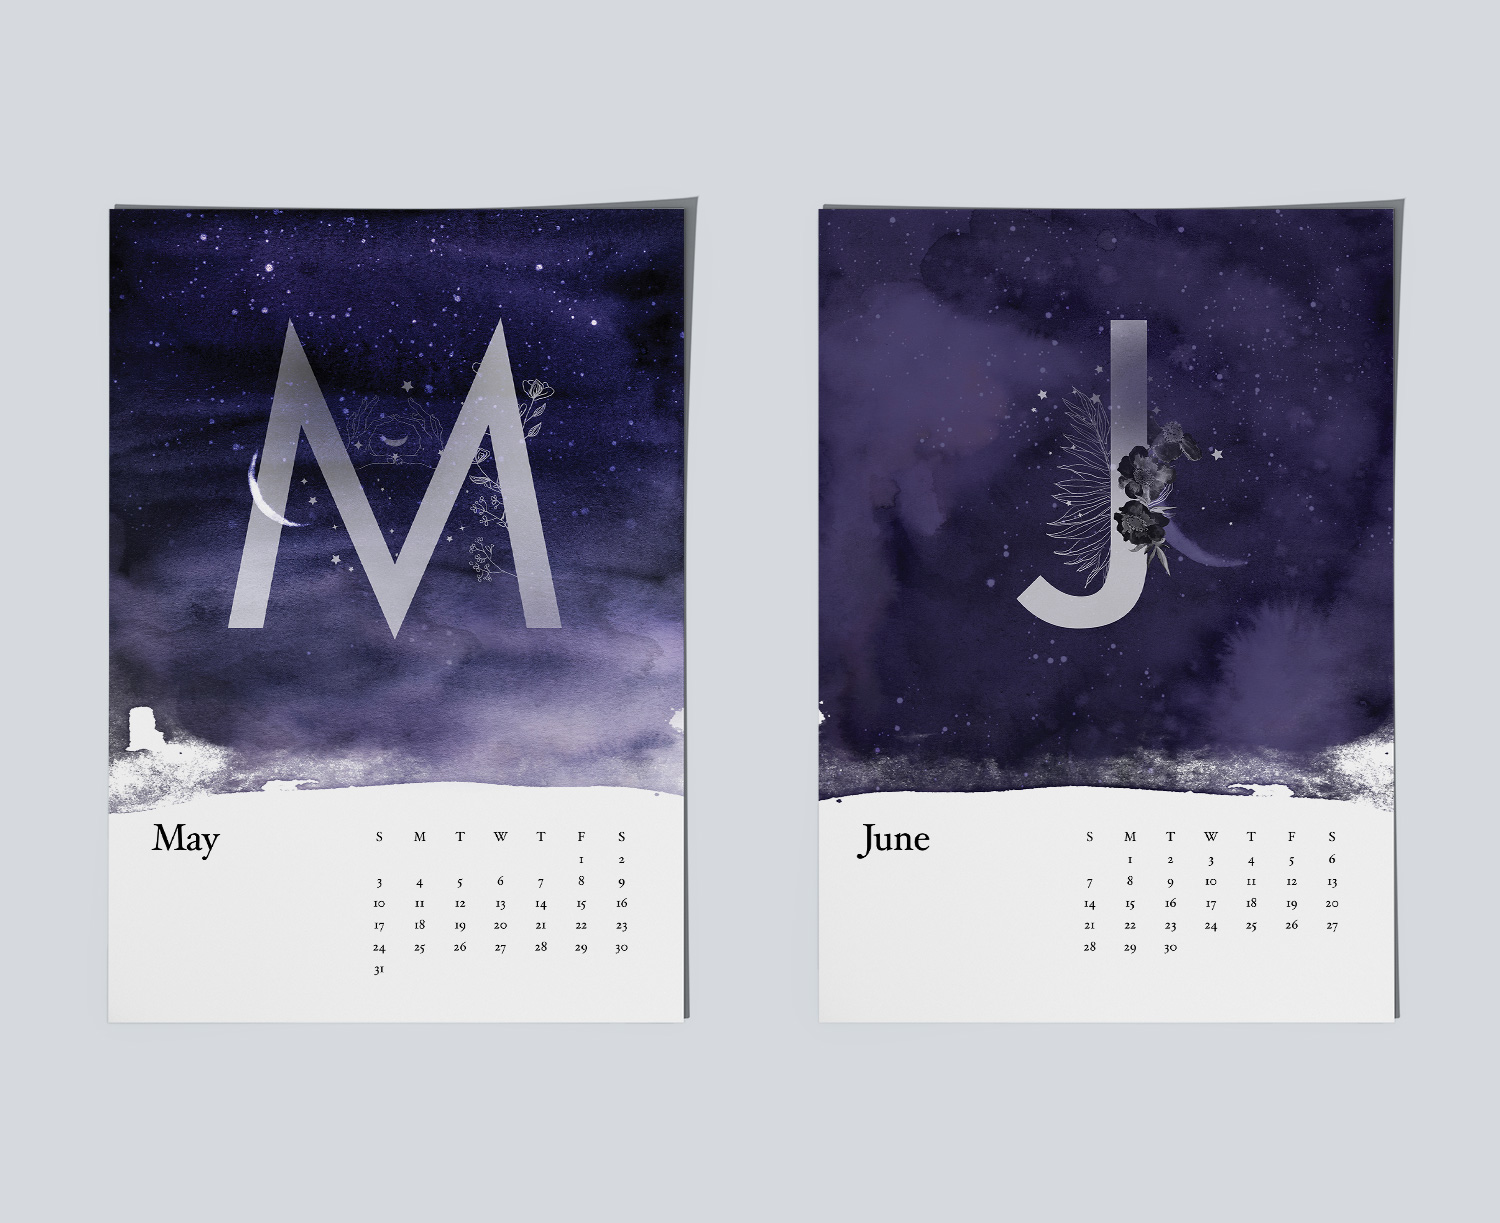 Example of magical night sky paintings for calendar.Example of magical night sky paintings for May and June months.